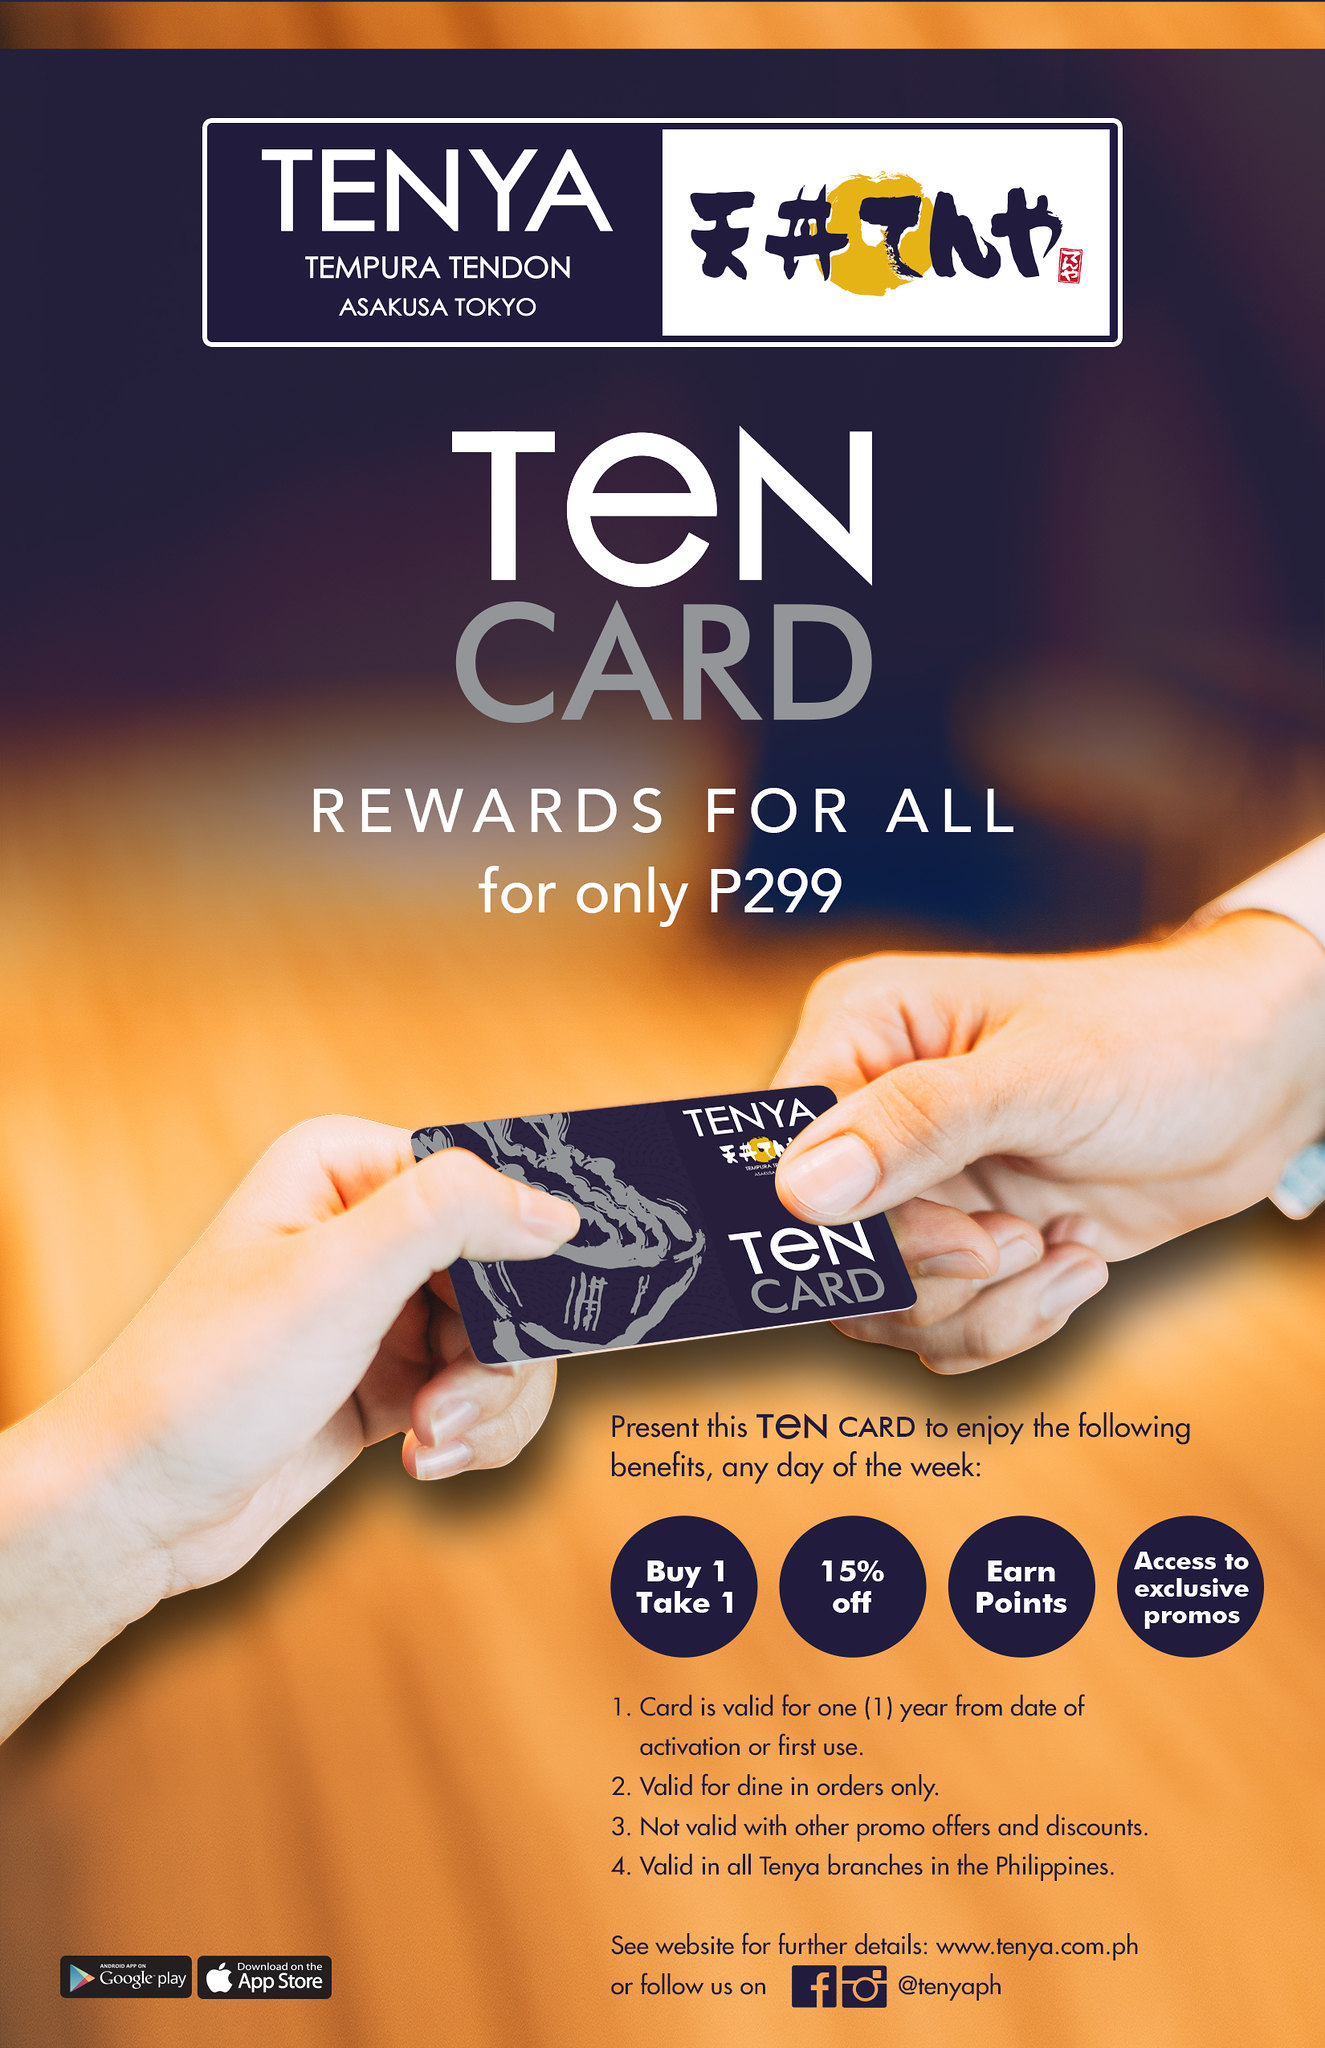 Love Japanese Food? Tenya TEN-Card Benefits and Rewards